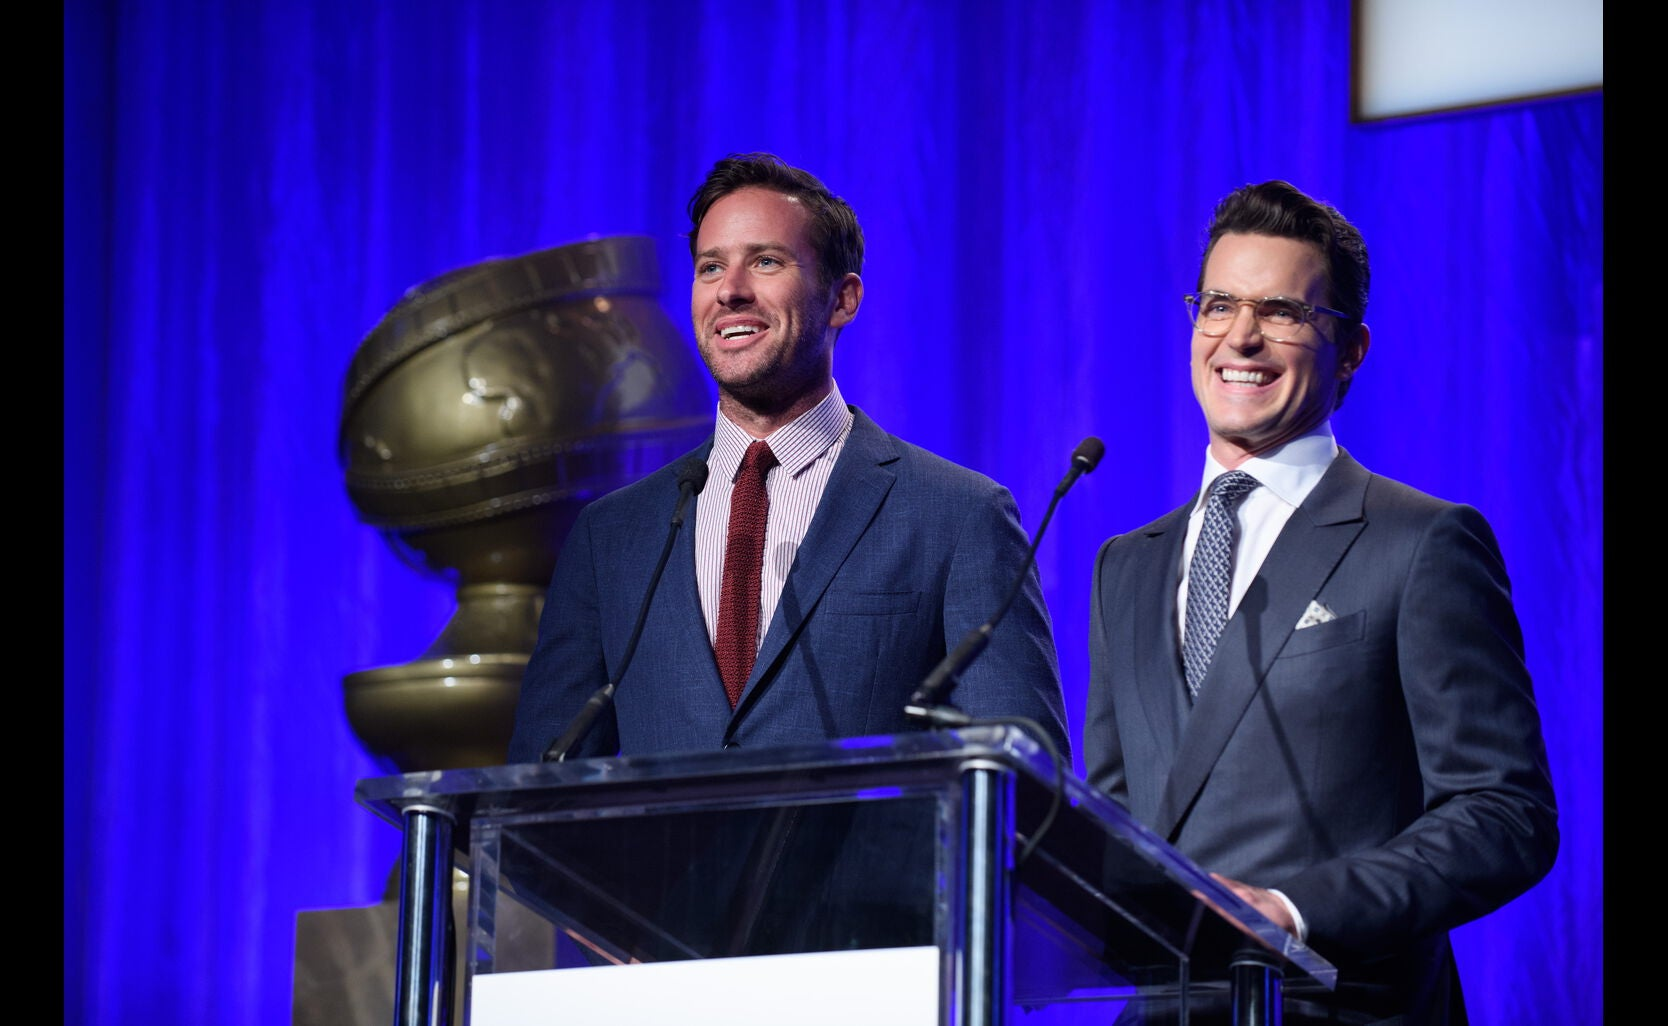 Presenters Armie Hammer and Matt Bomer